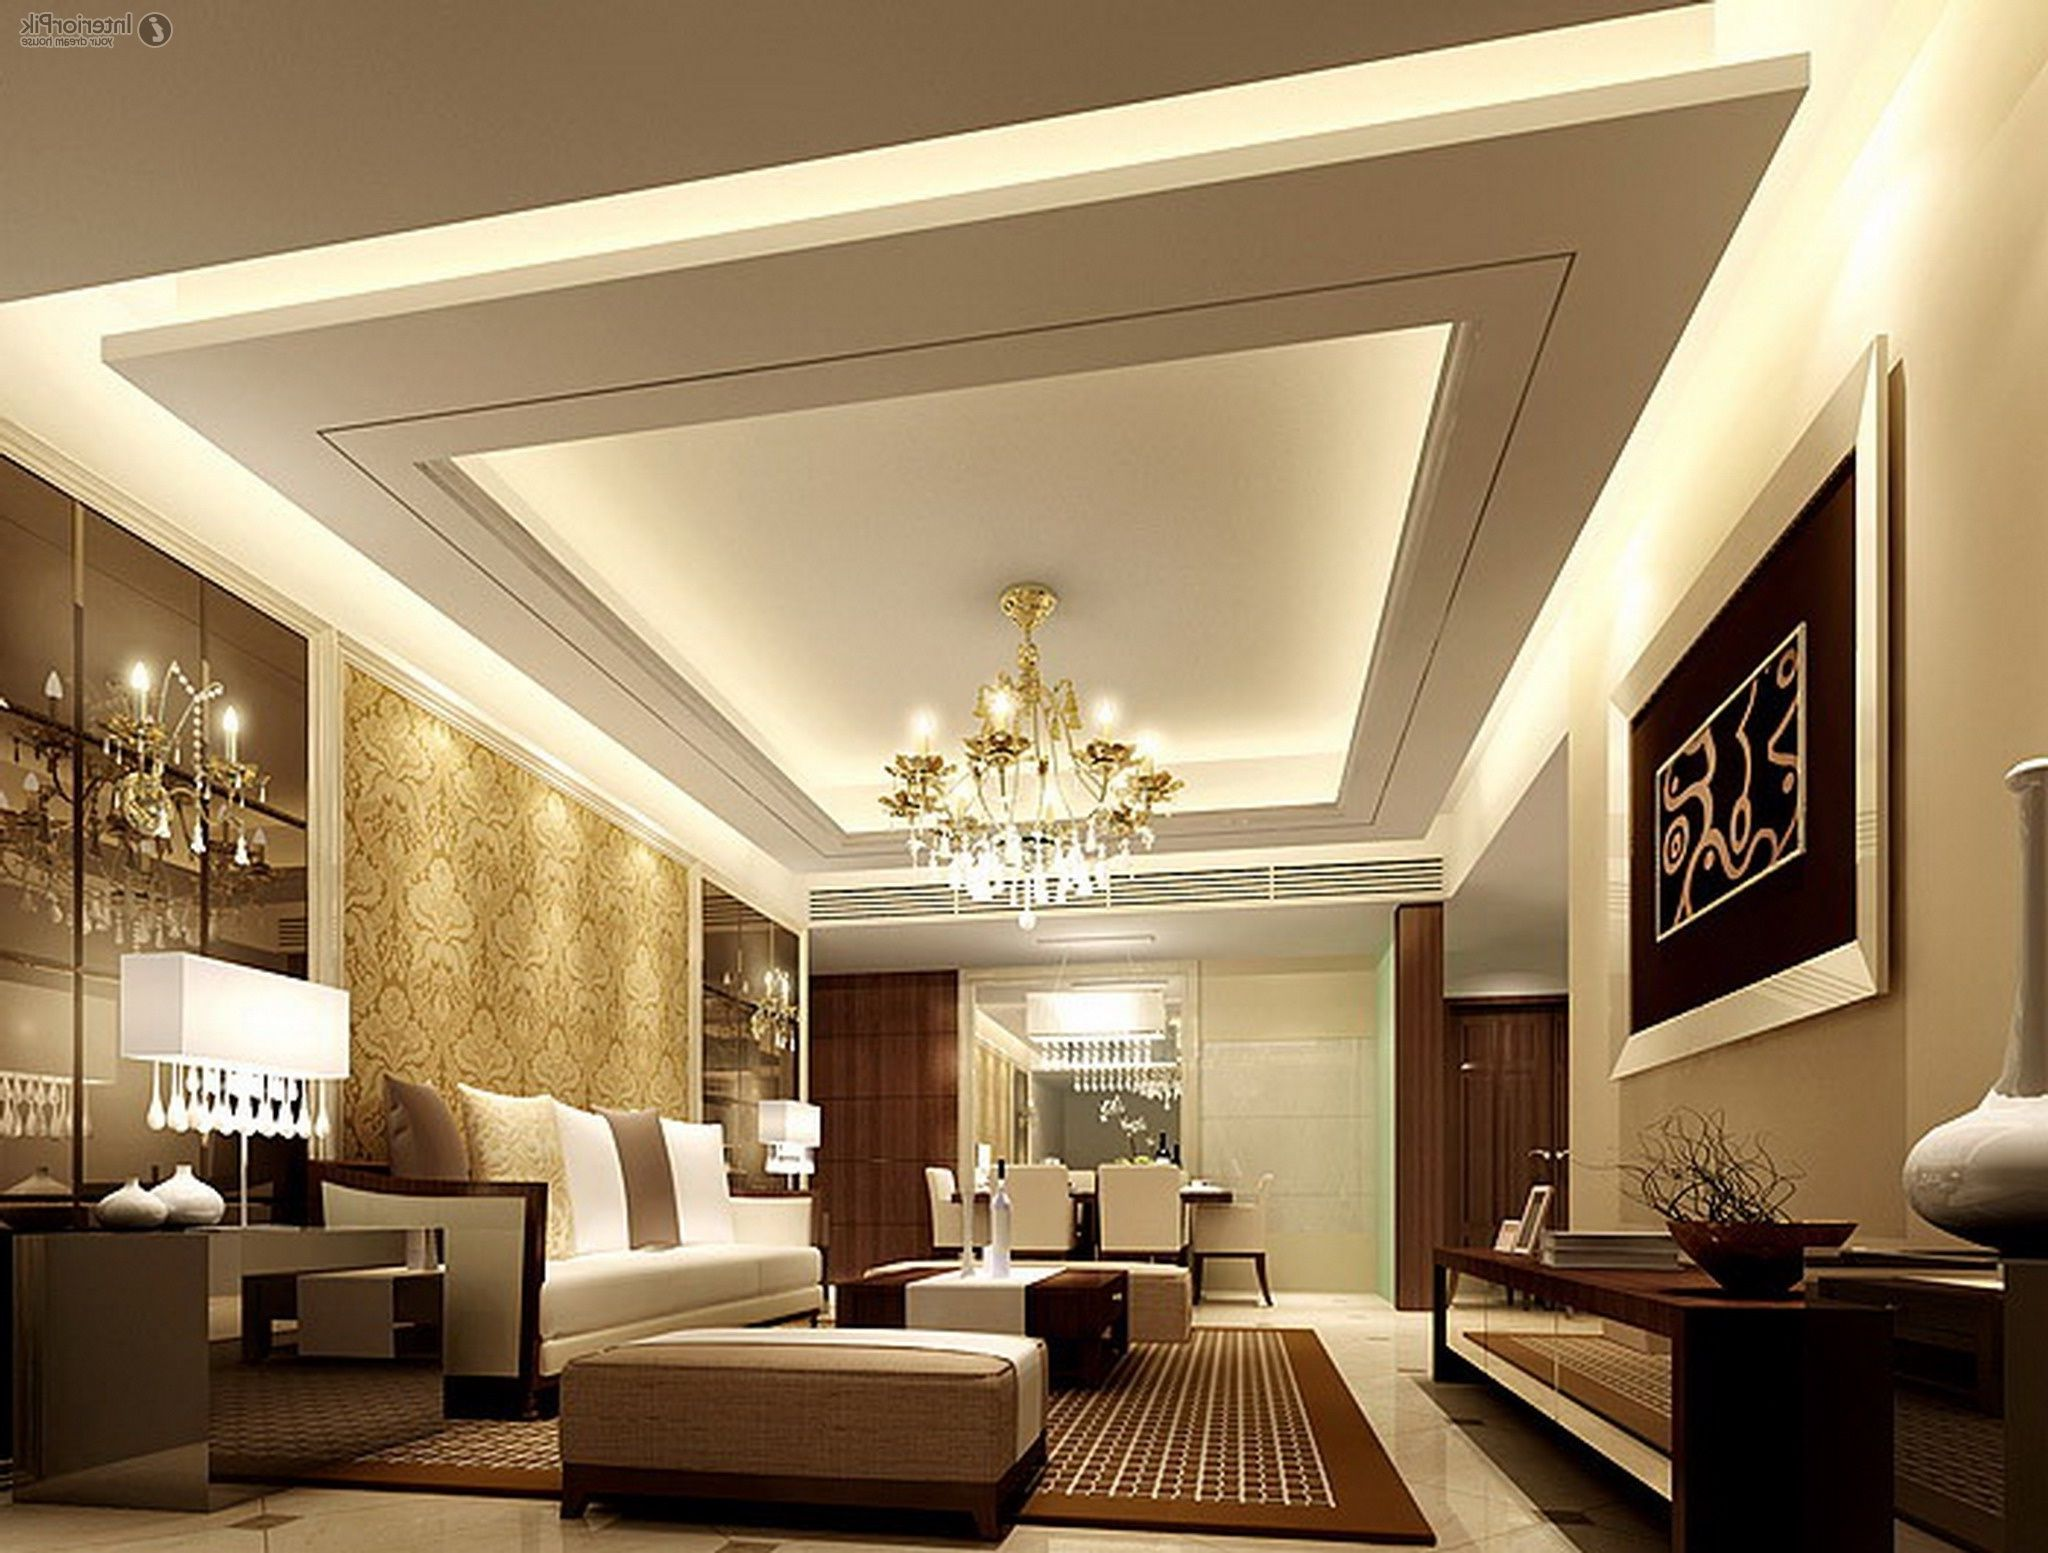 Ceiling Designs for Your Living Room | More Room decor, Ceilings ...